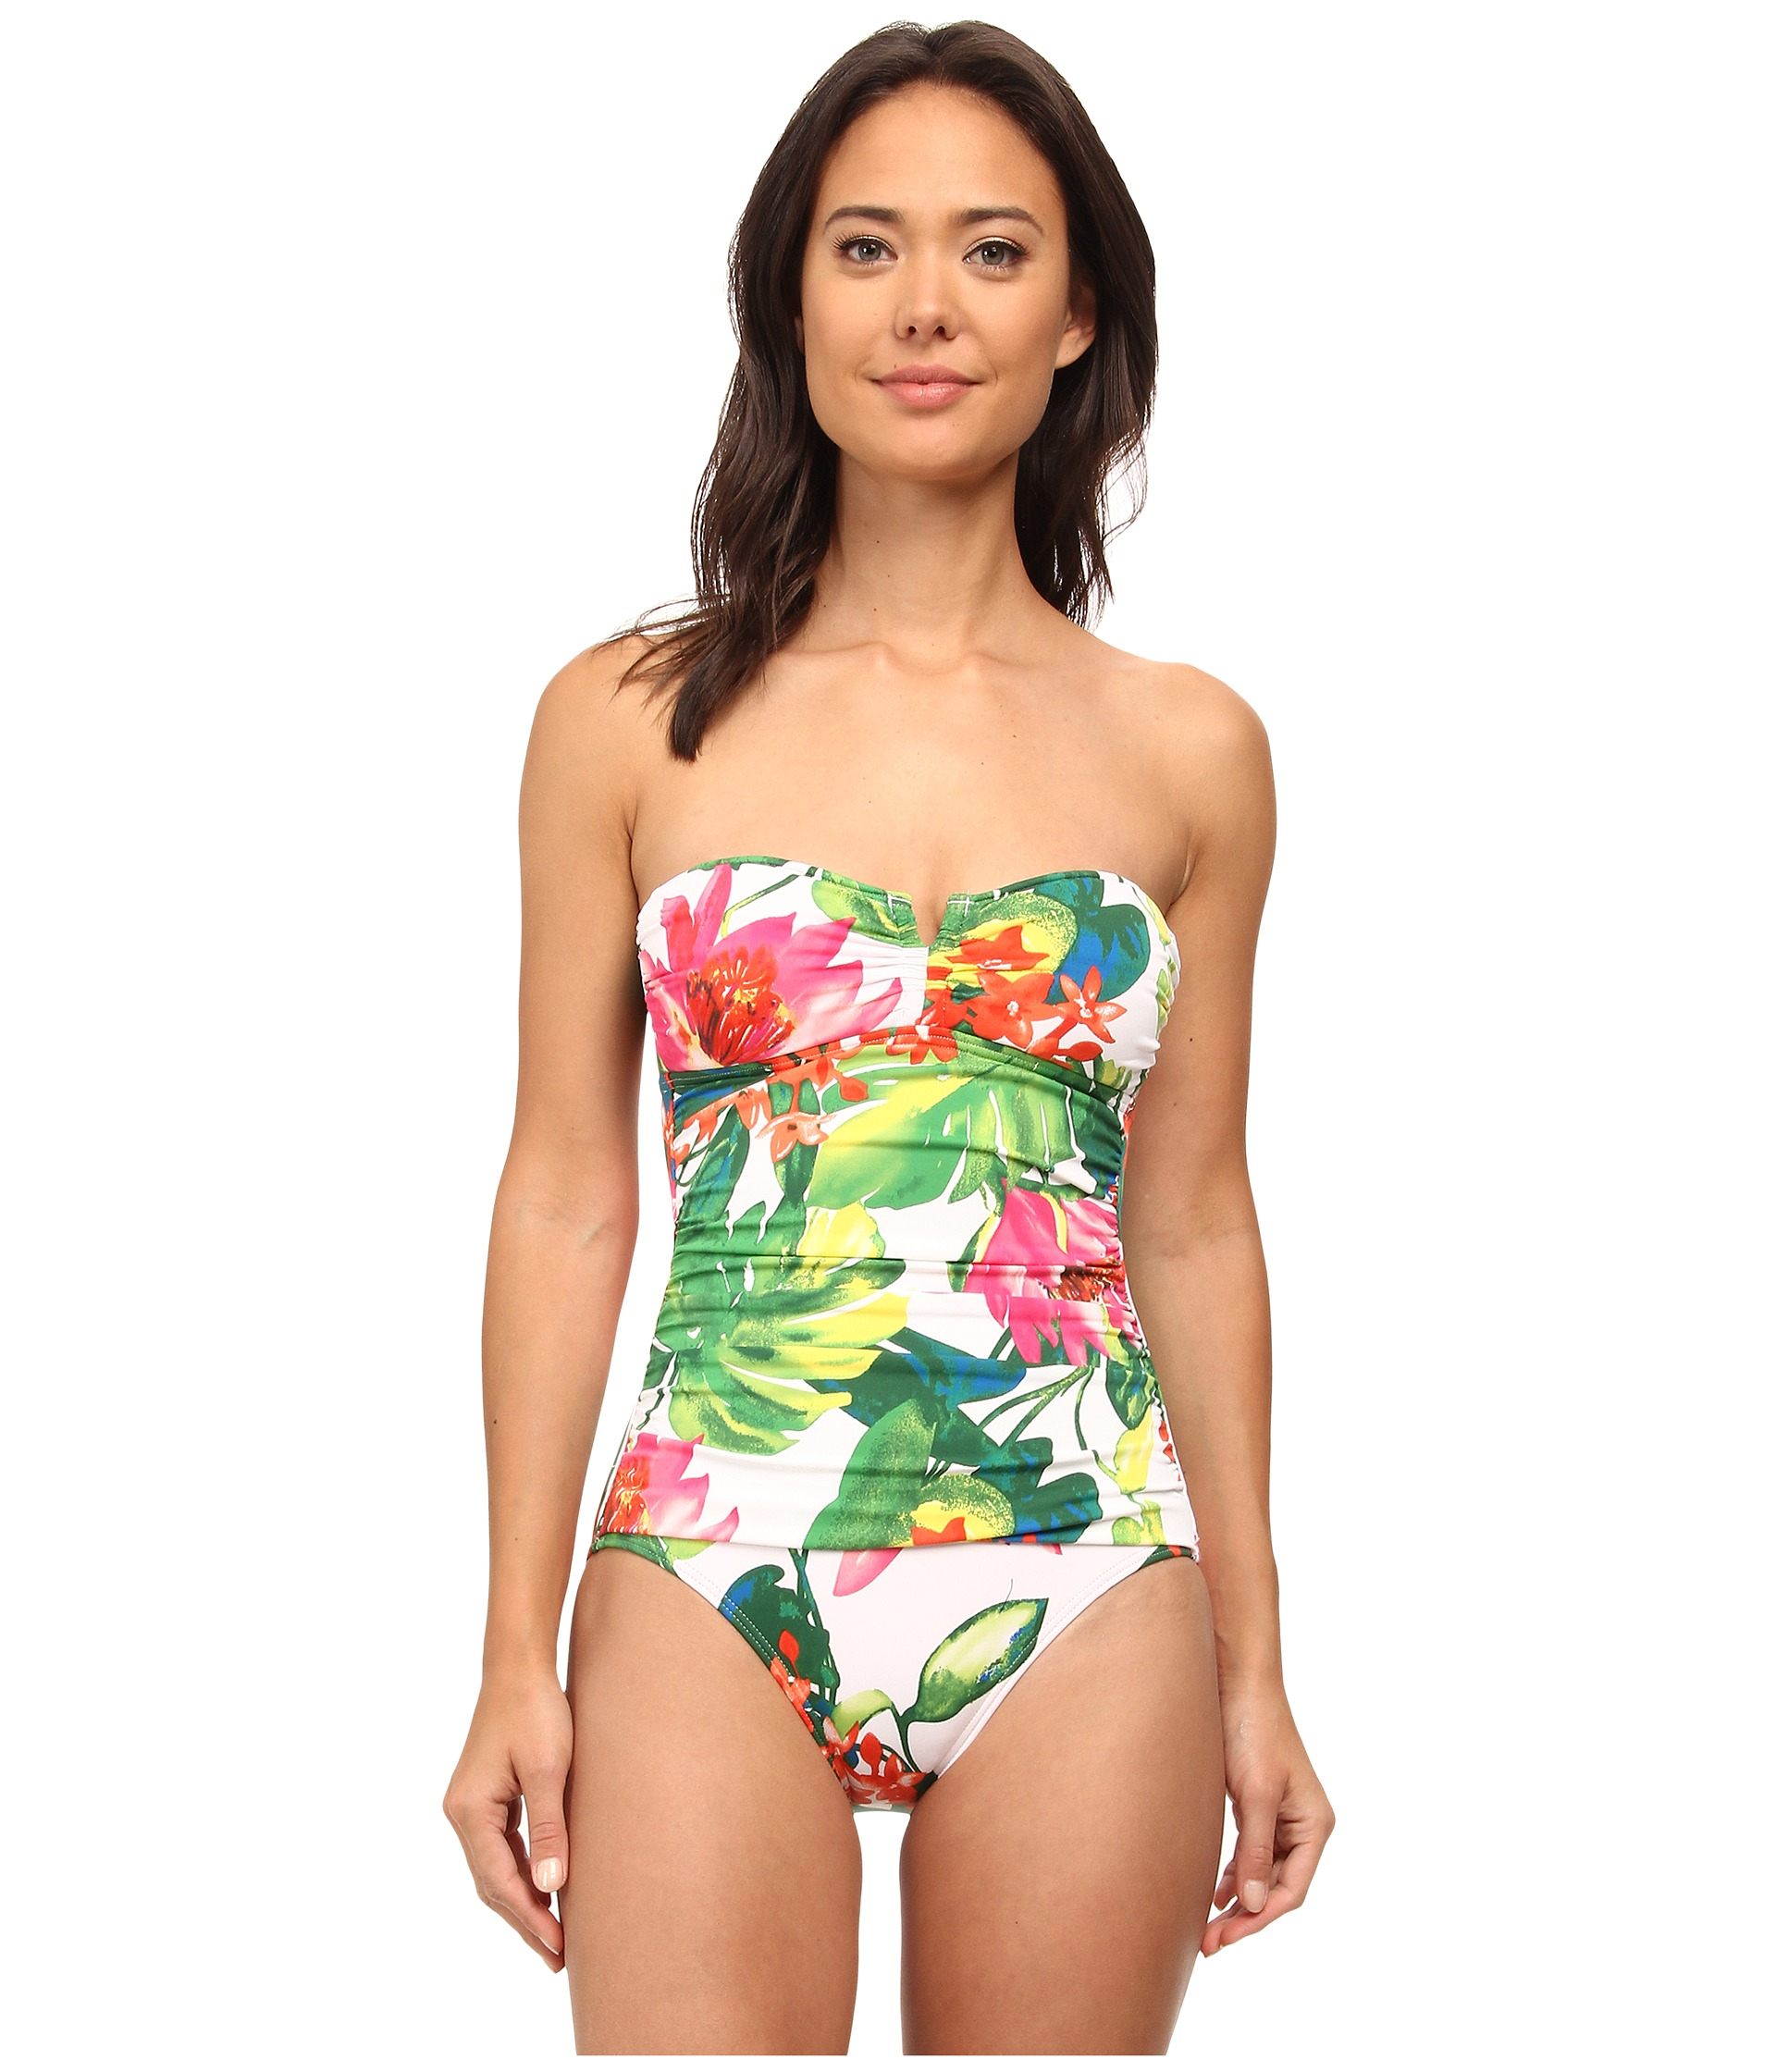 ff4acaed27 Tommy Bahama White Tropical Bandeau One-piece in White - Lyst